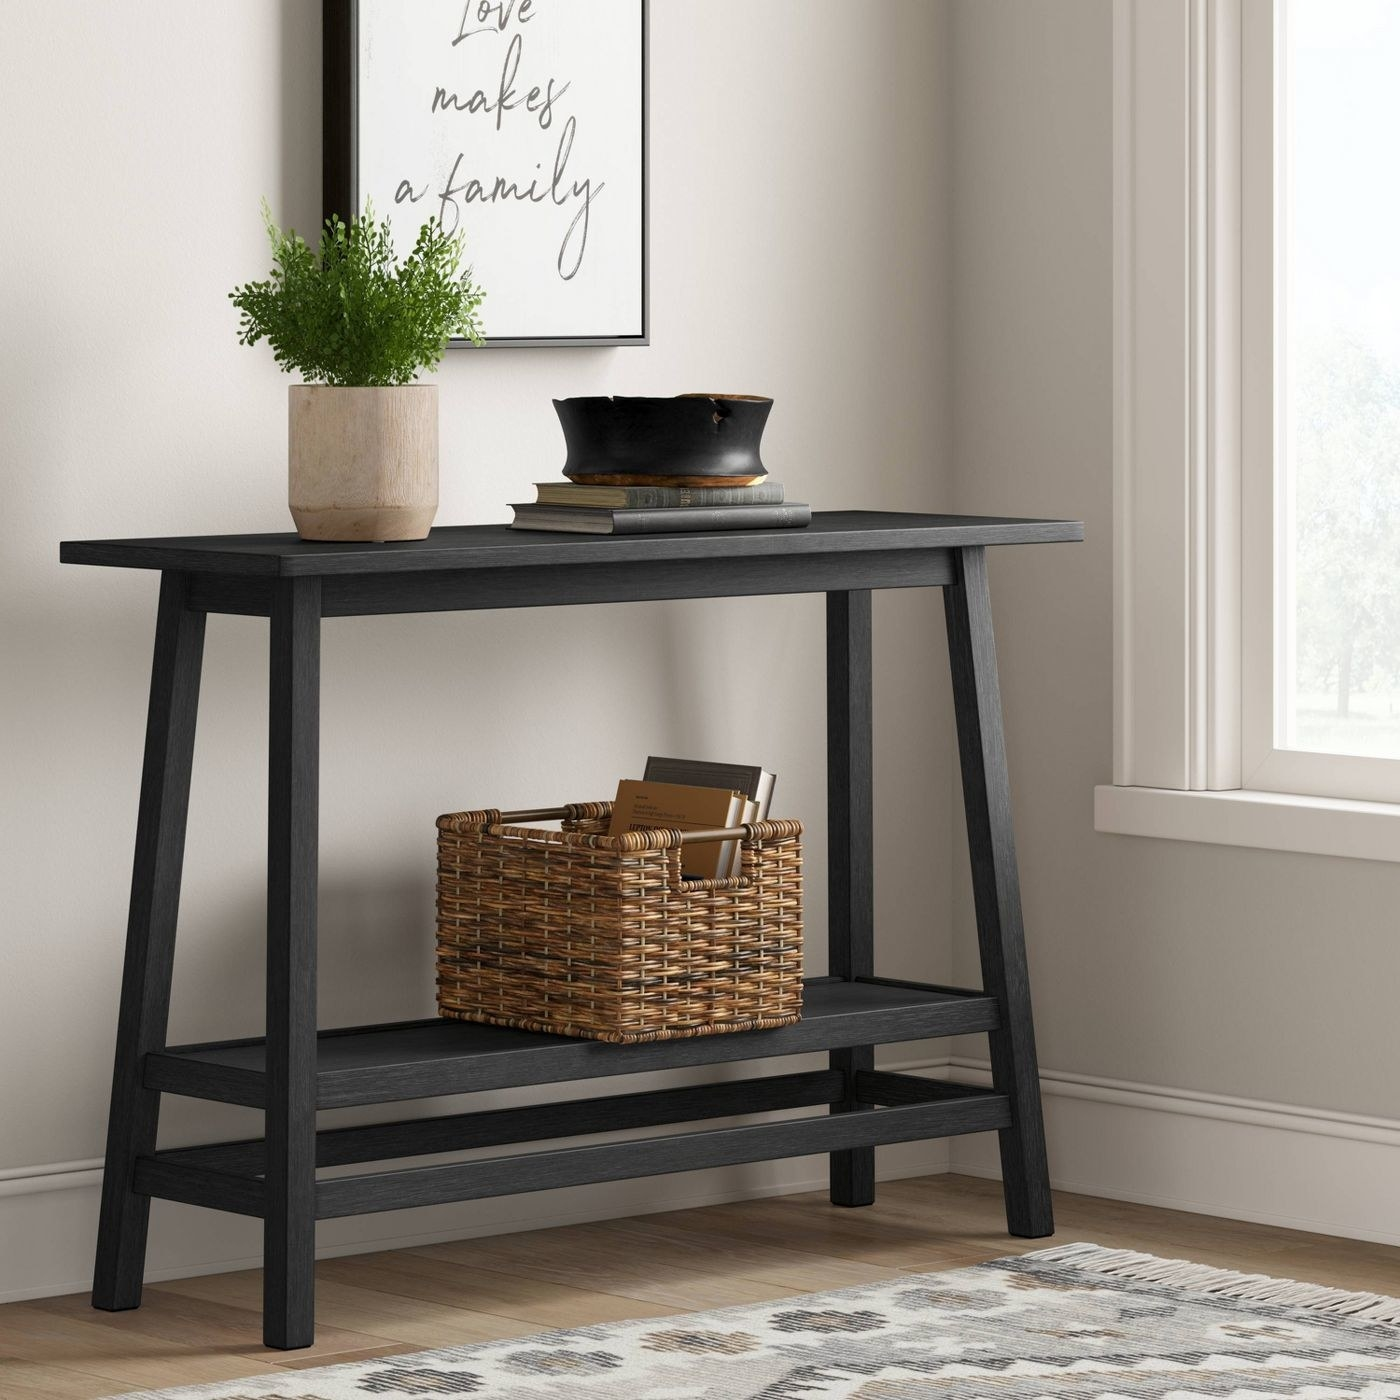 the wood console table in black holding a basket with books and a plant